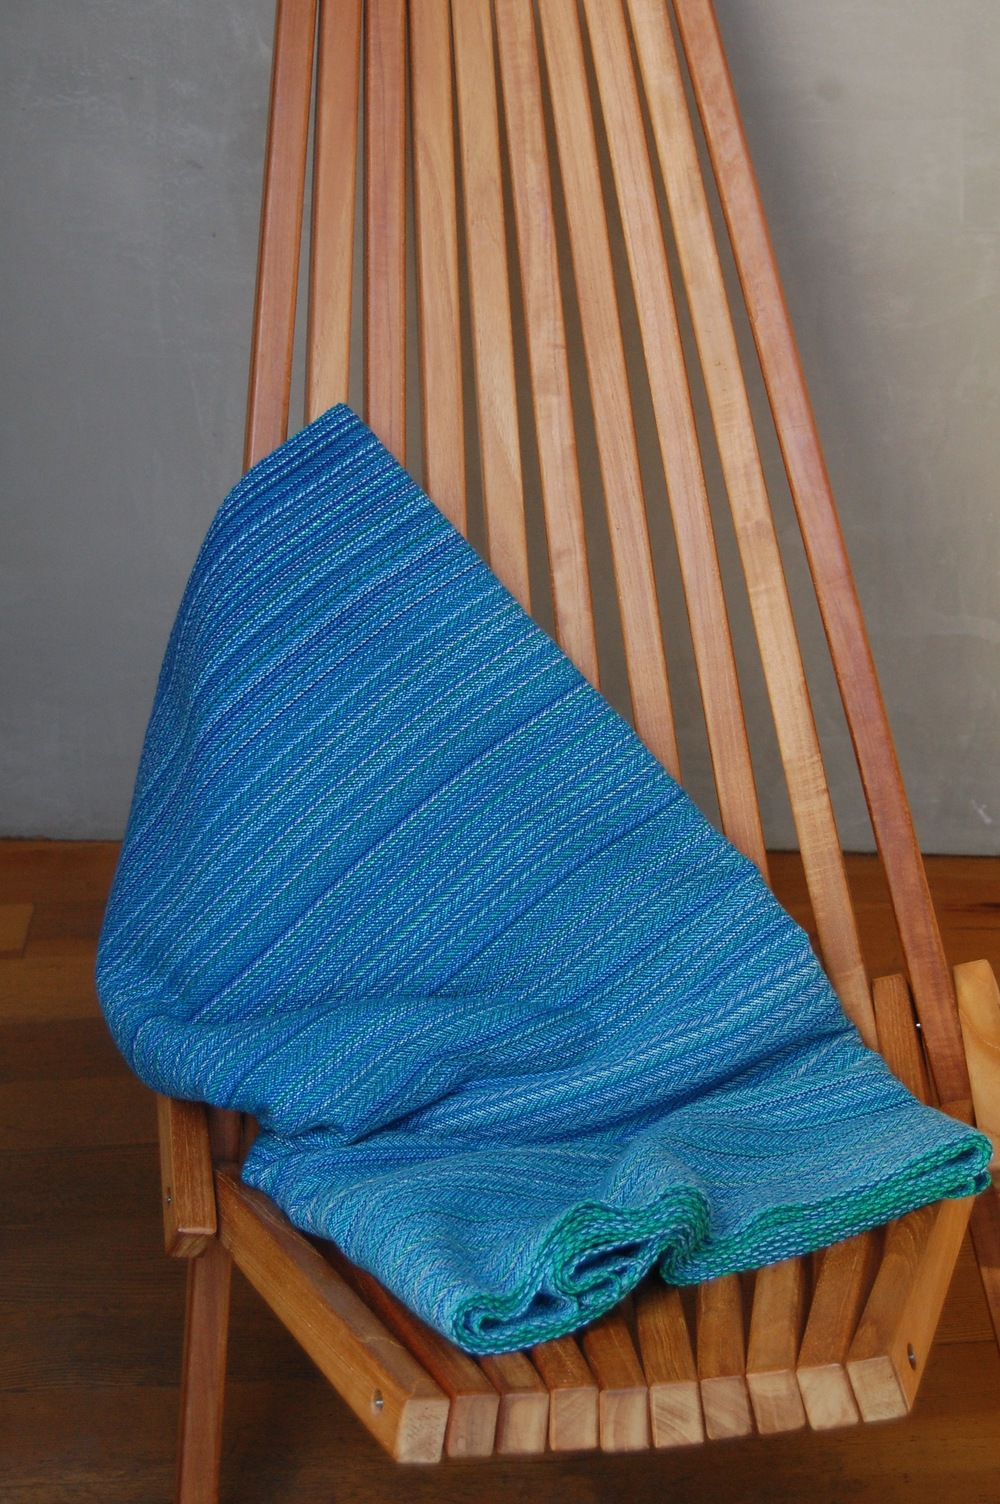 Naiad Lapis Superwash Merino Lambswool weft 4.8 meters $576 approximately 254 grams/m^2